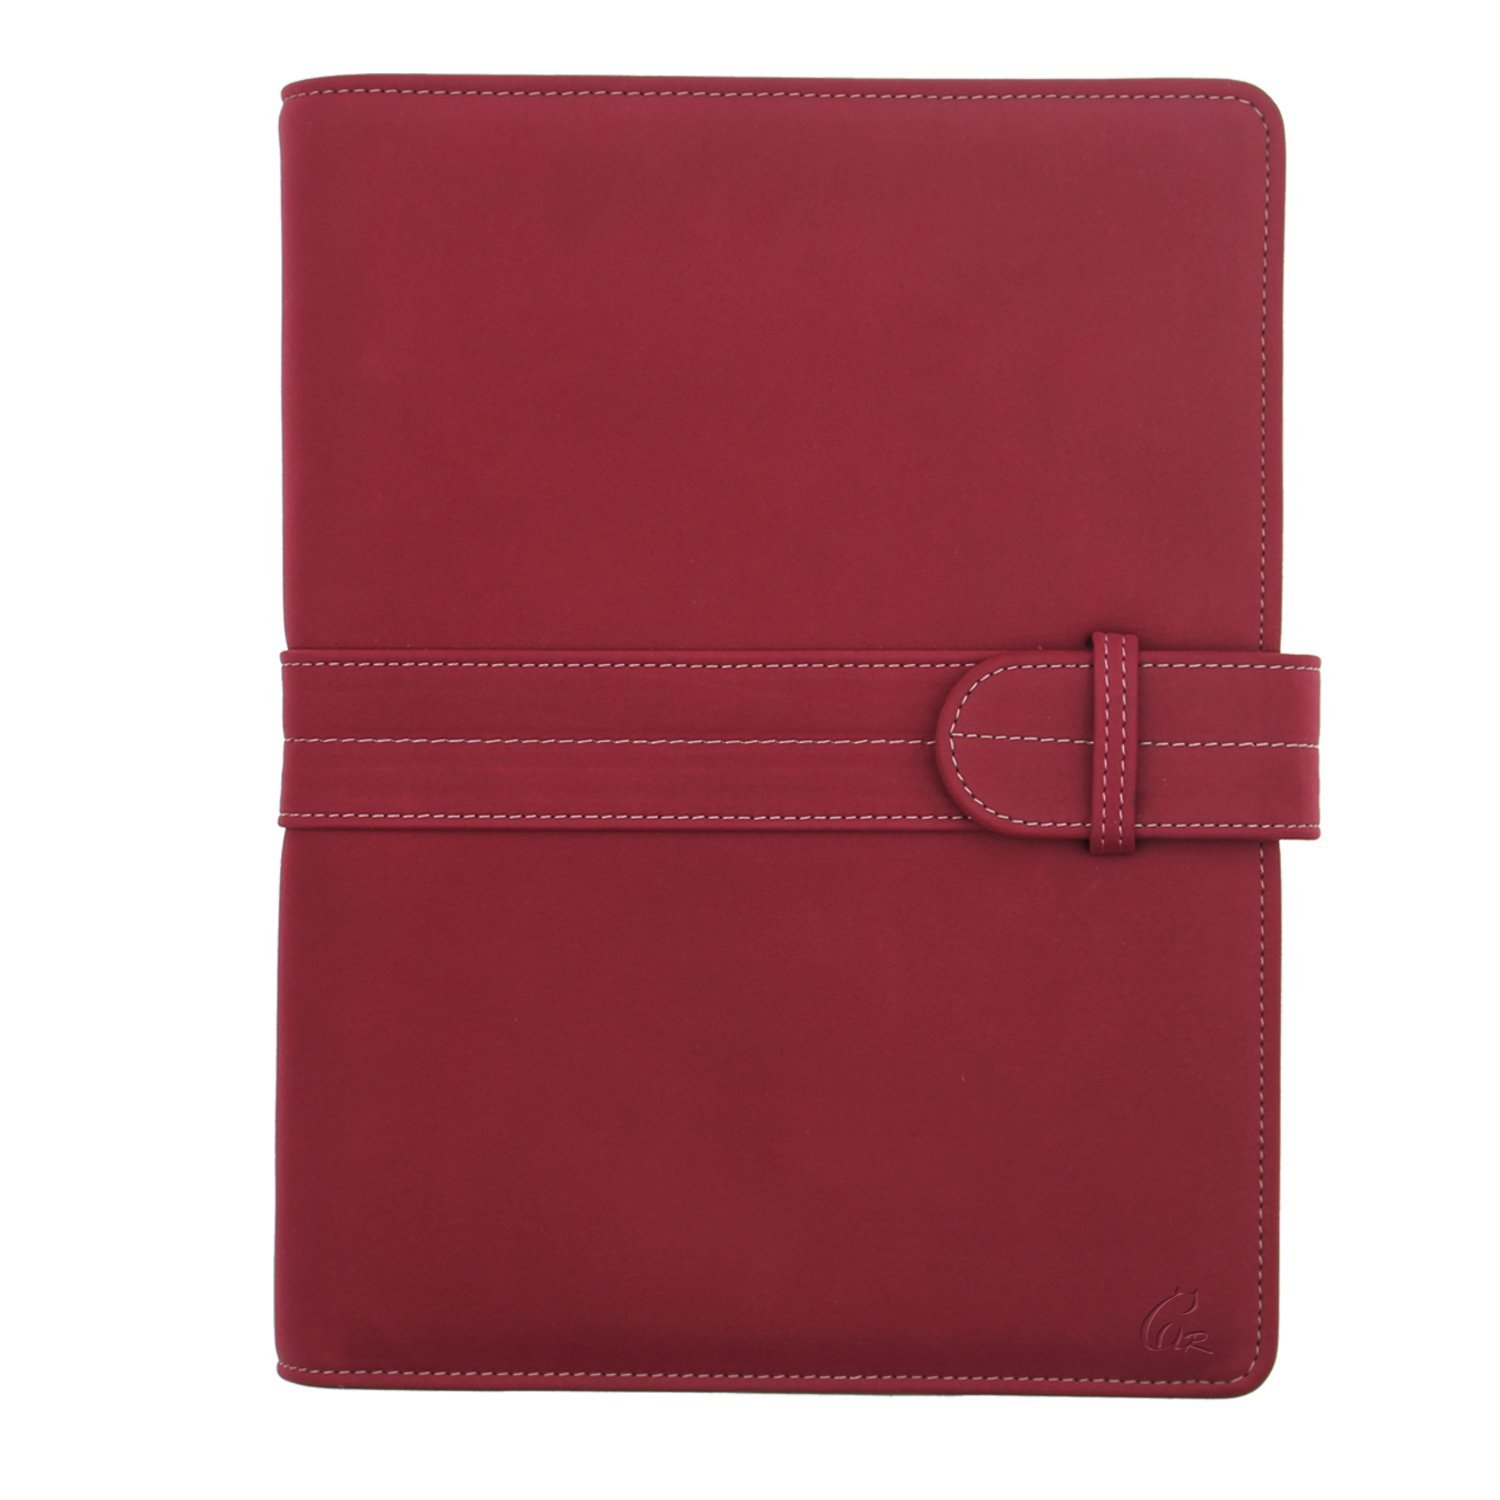 Gracallet® A5 Refillable Suede Leather Hard Cover Wide Rule Travel/Business/Student Notebook/Diary/Journal (Wine Red)